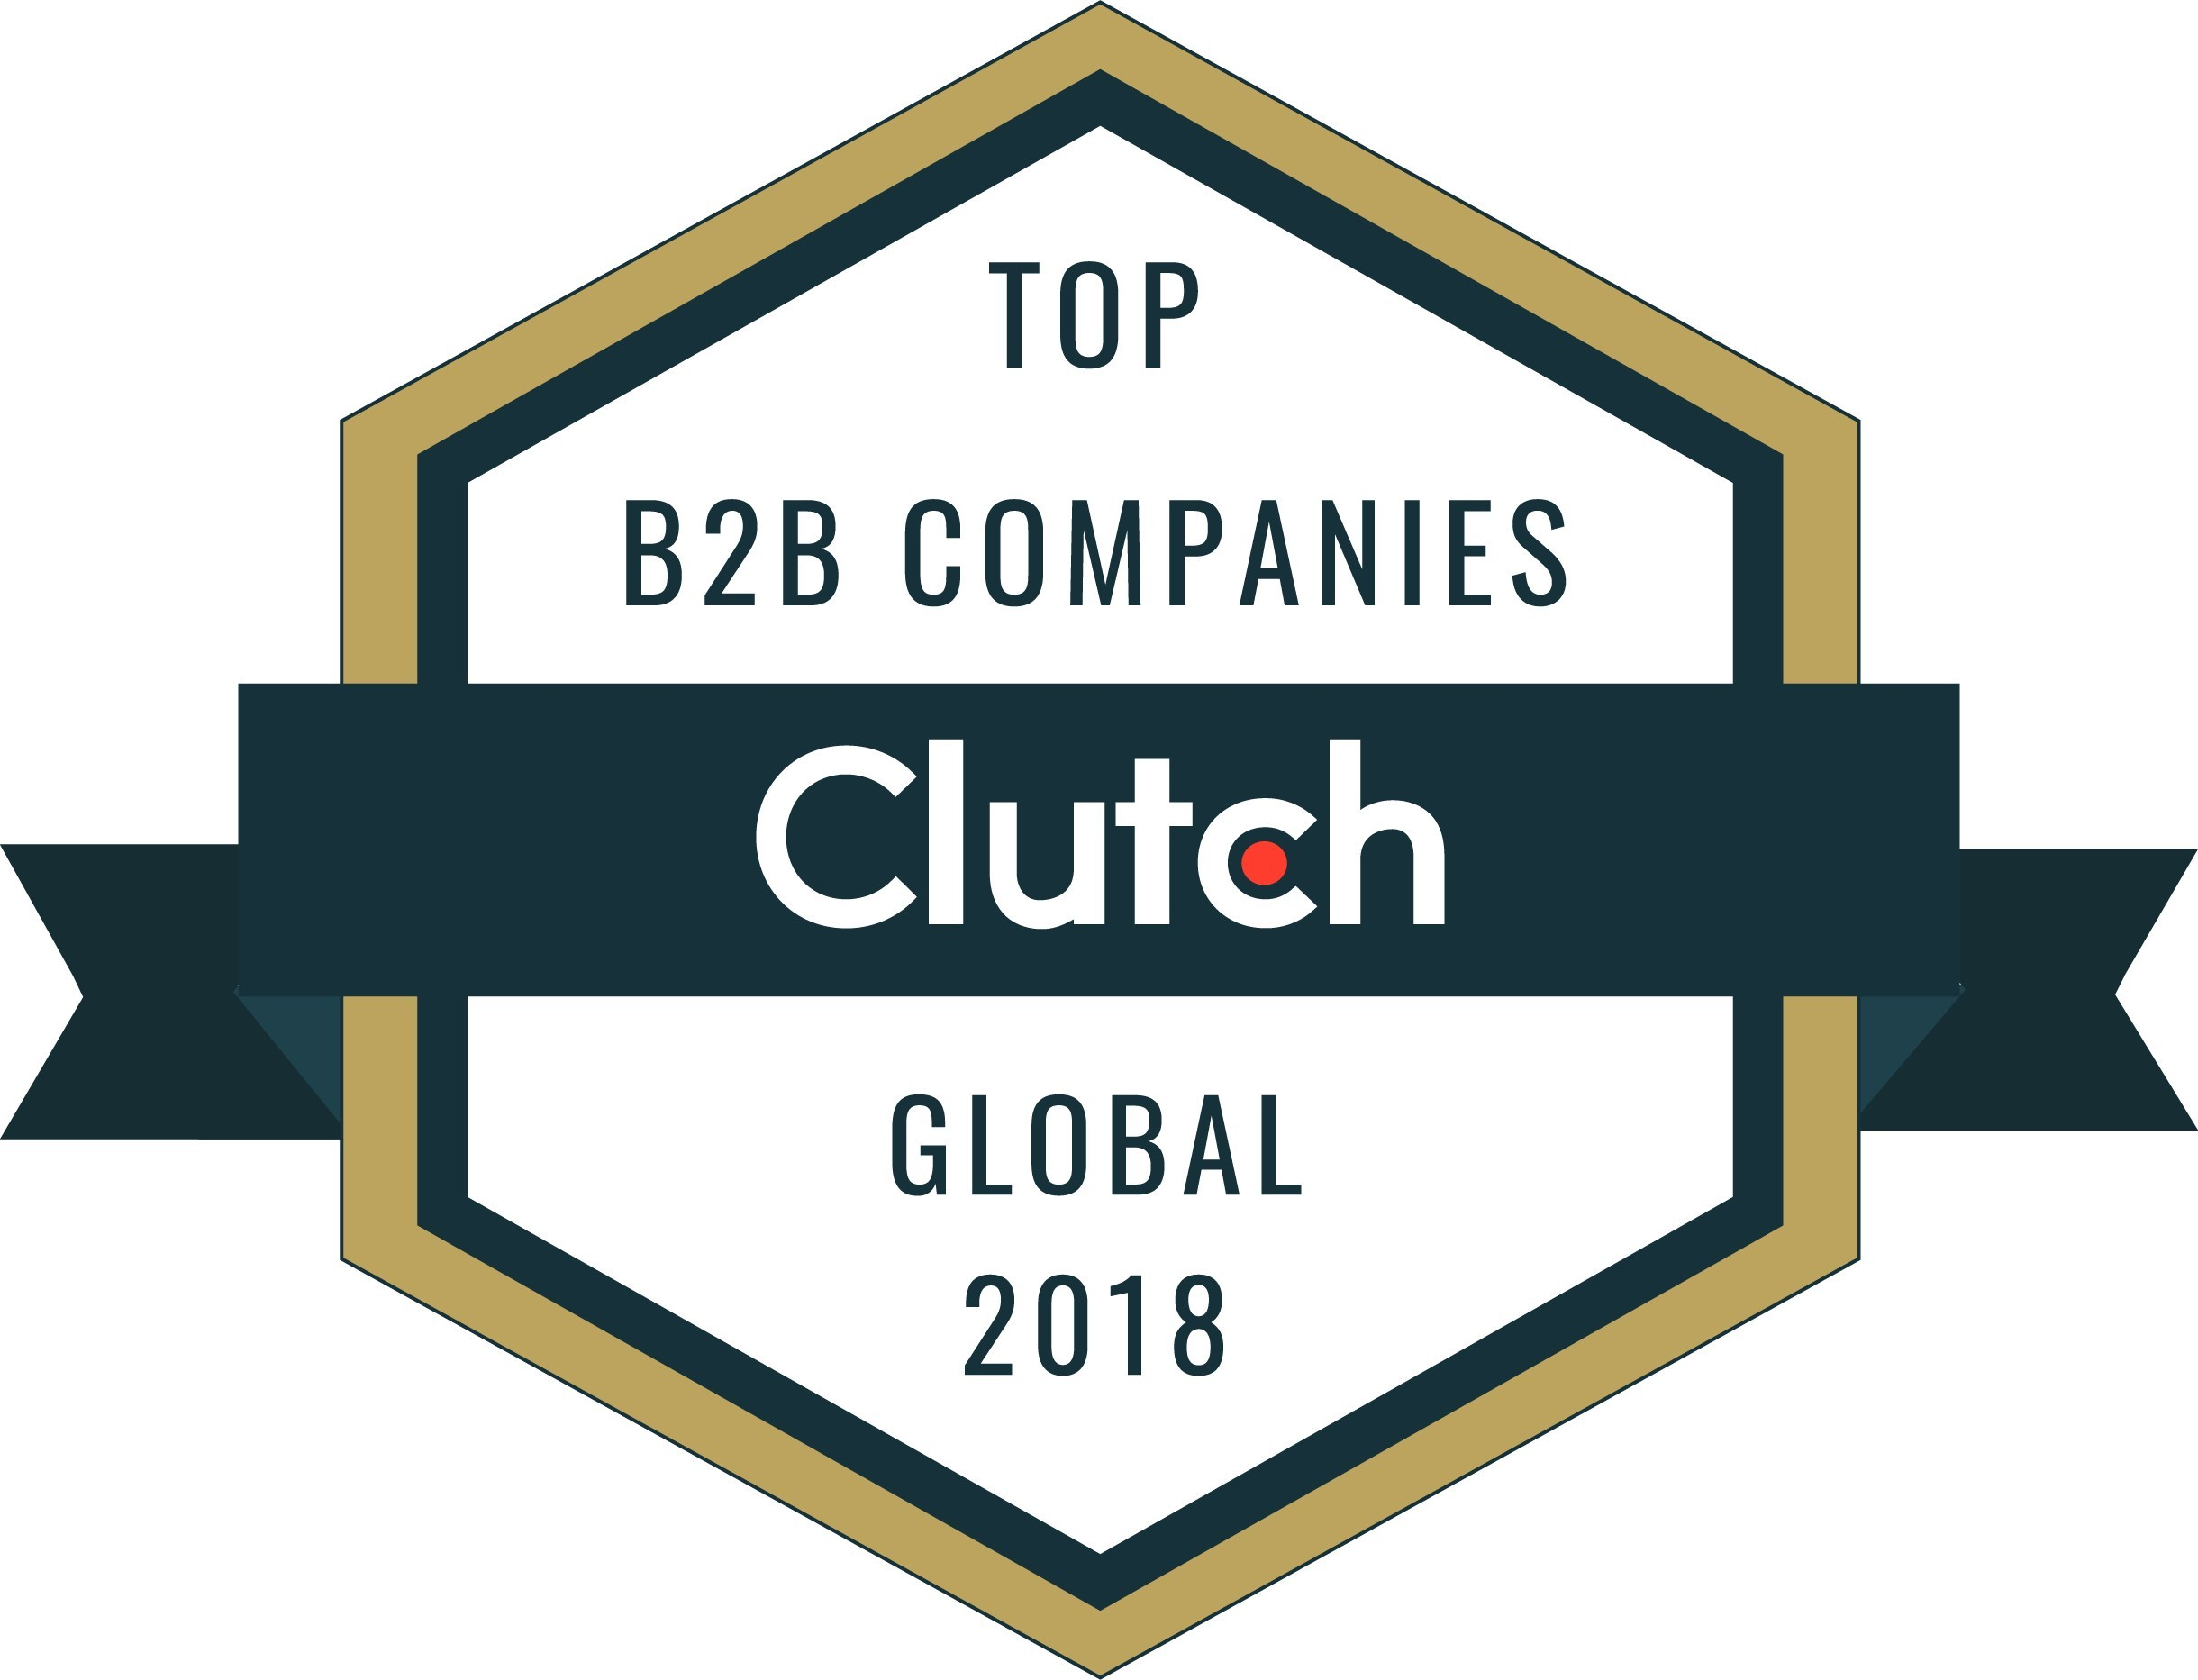 The B2B companies featured in the exclusive Clutch 1000 also are Clutch Global Leaders for 2018.